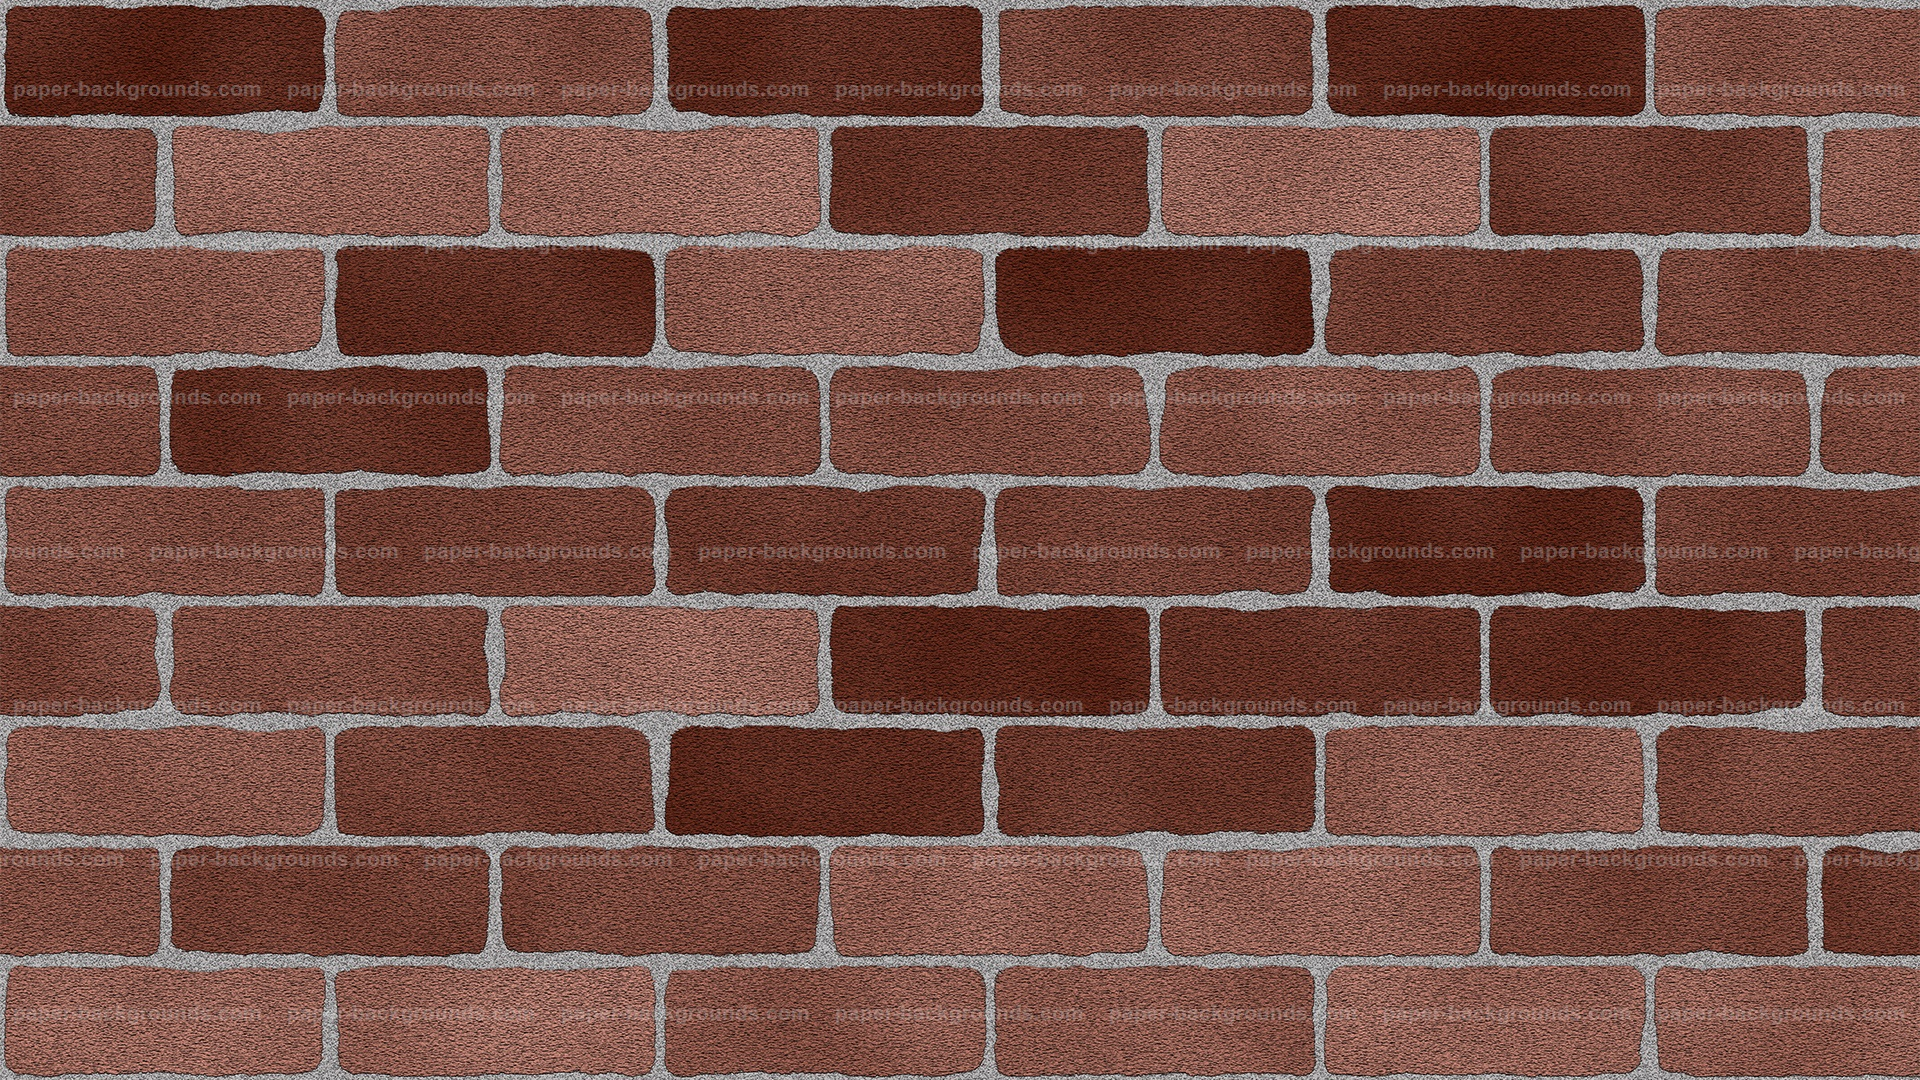 Orange Red Sandblasted Brick Wall Texture HD